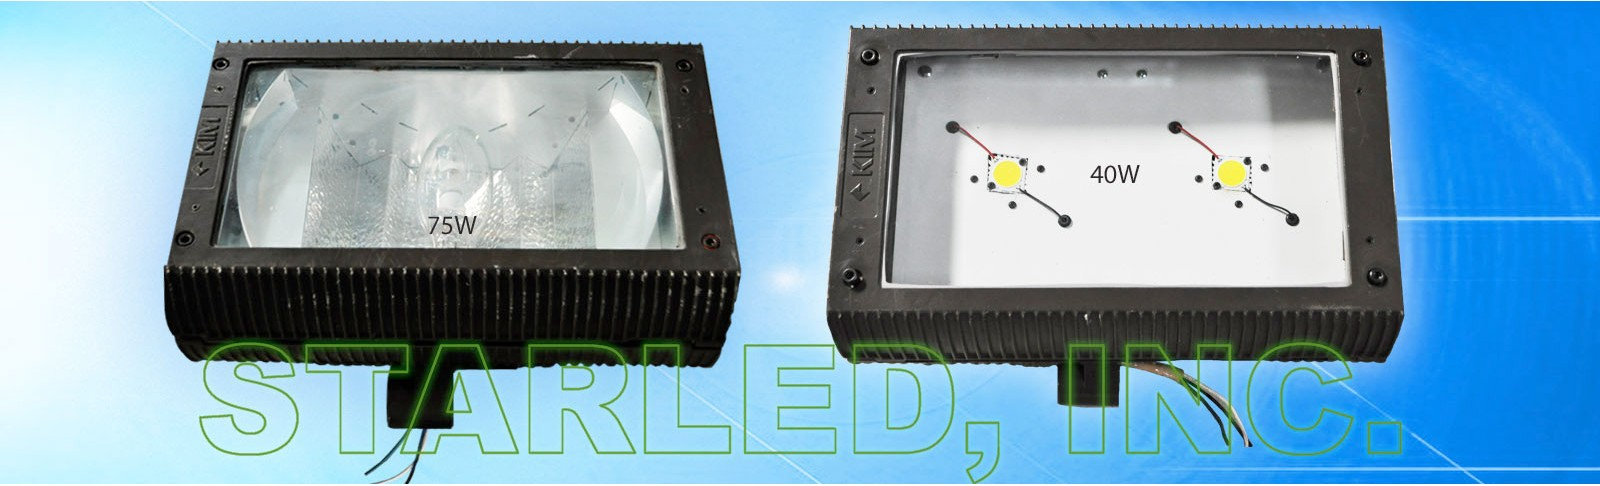 LANDSCAPE FLOOD LAMPS